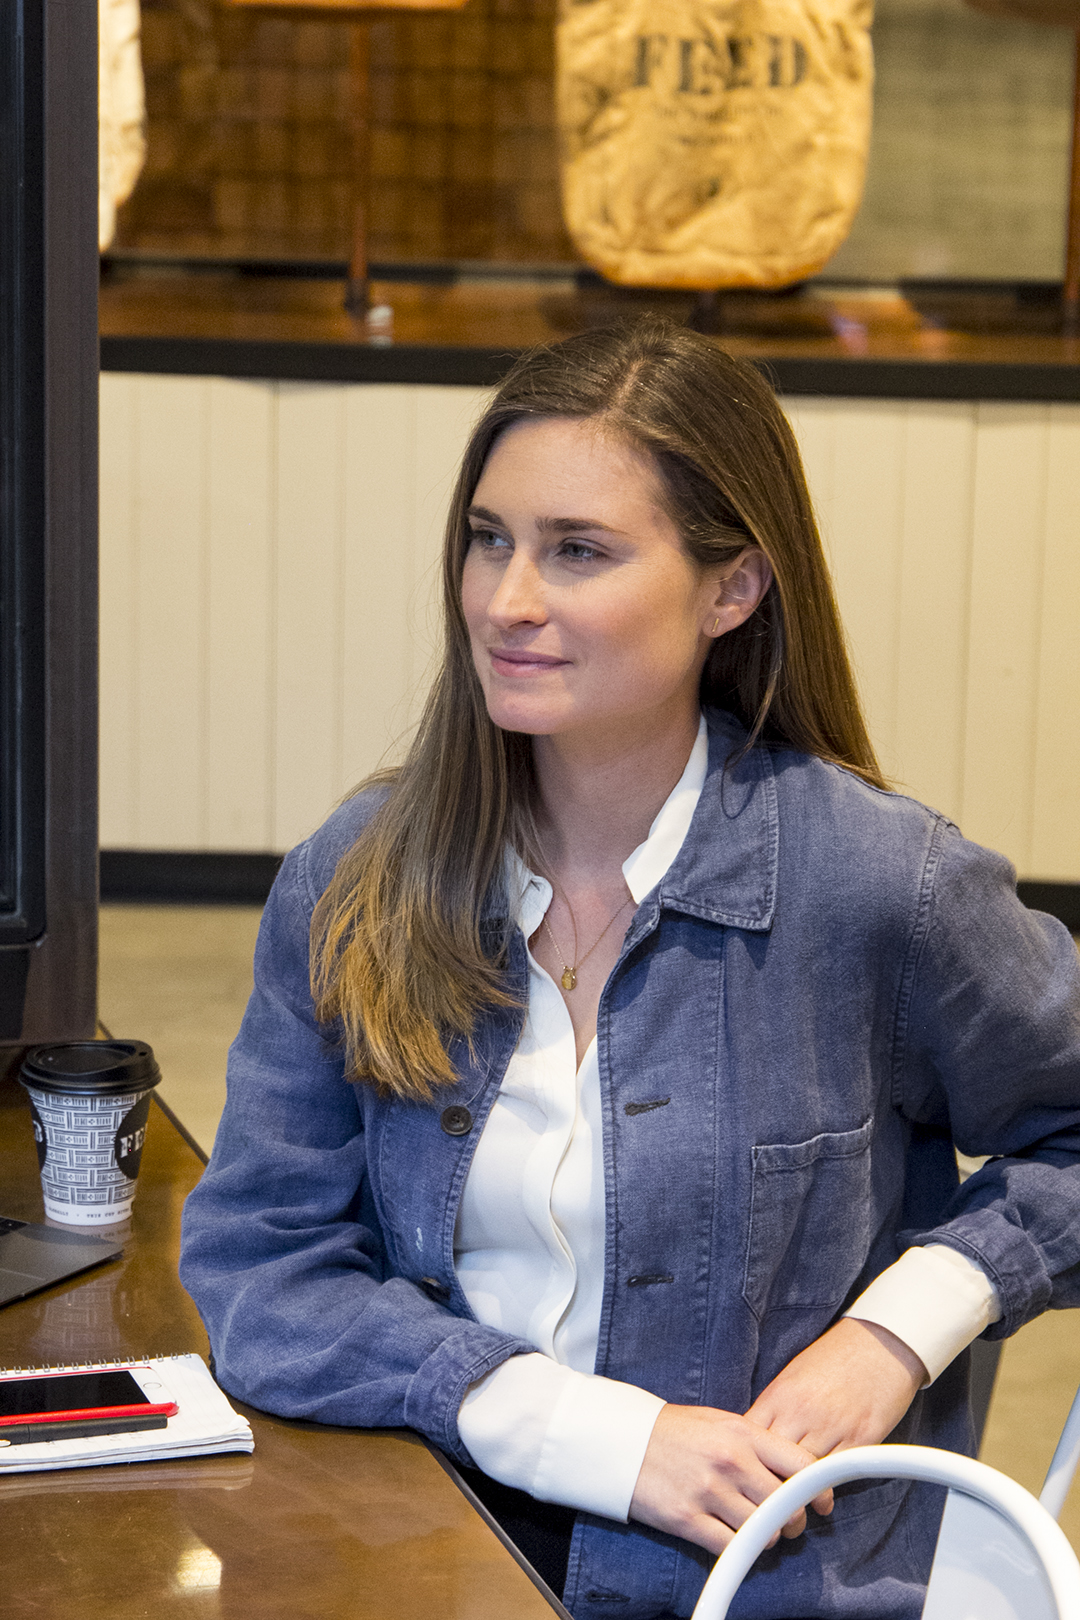 Lauren Bush Lauren, founder of FEED